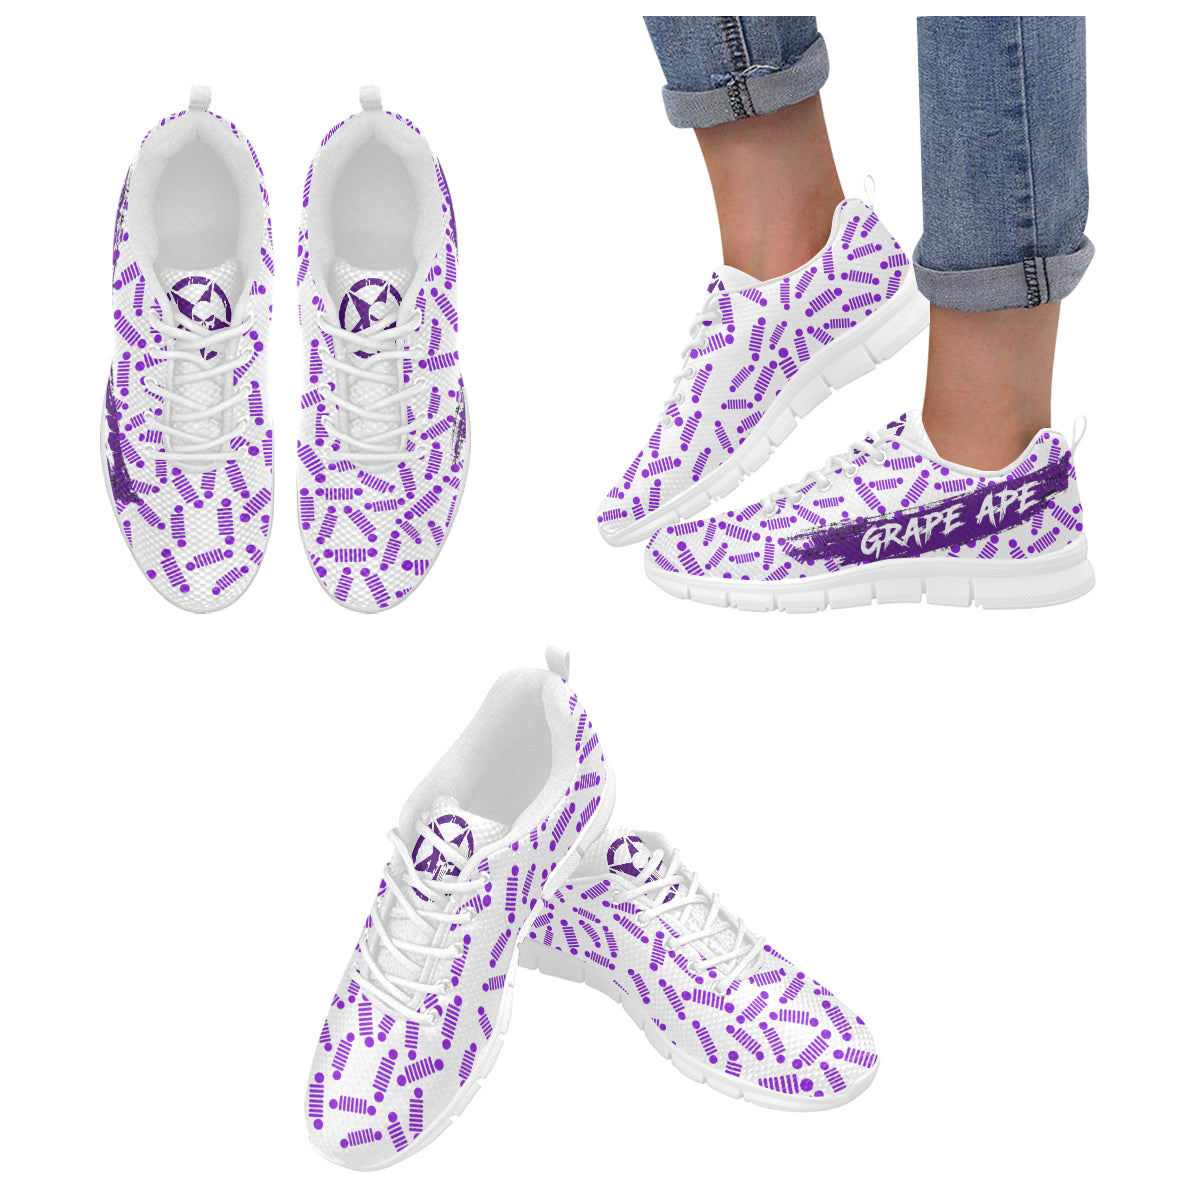 White and purple jeep logo order size up Women's Breathable Running Shoes (Model 055).